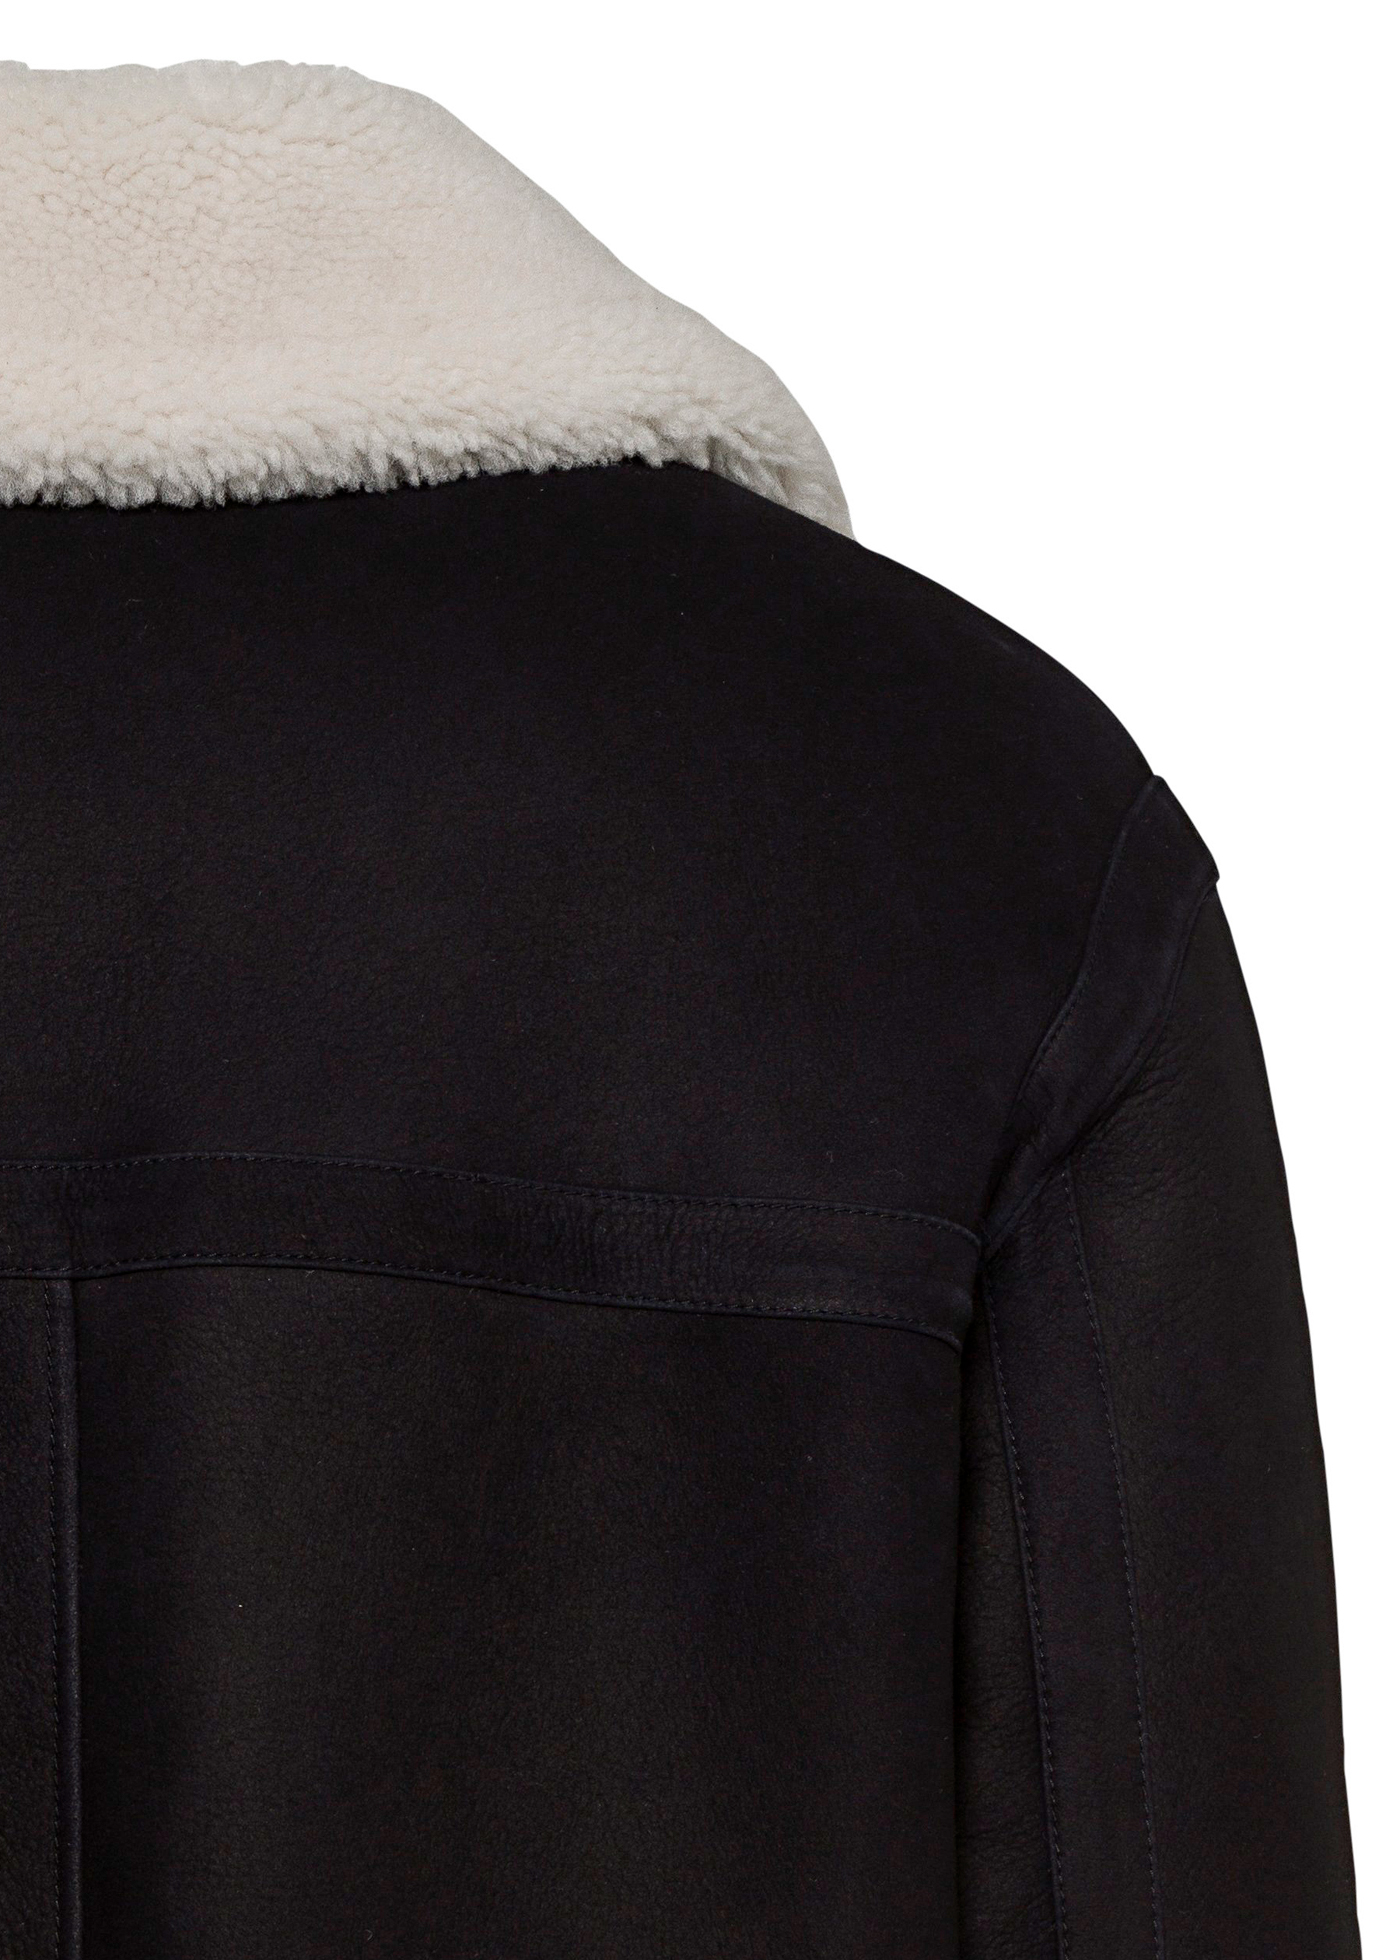 ARCHIVE SHEARLING JACKET image number 3